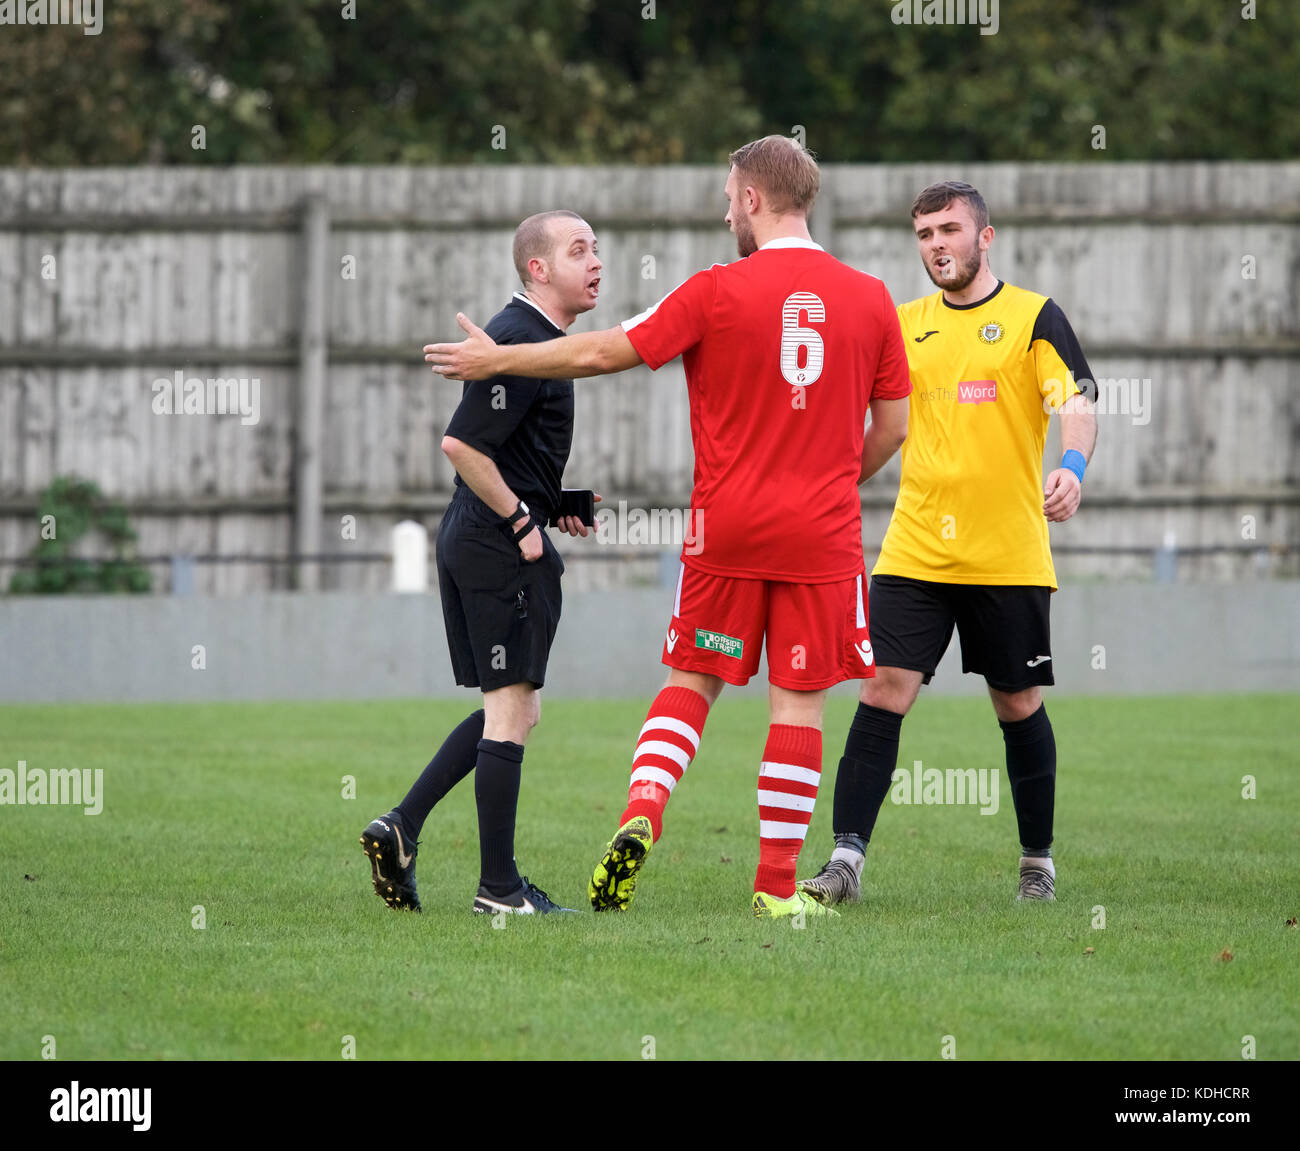 A footballer argues with the ref during the match between New Mills and Oswestry Town on October 14th 2017 at Church - Stock Image